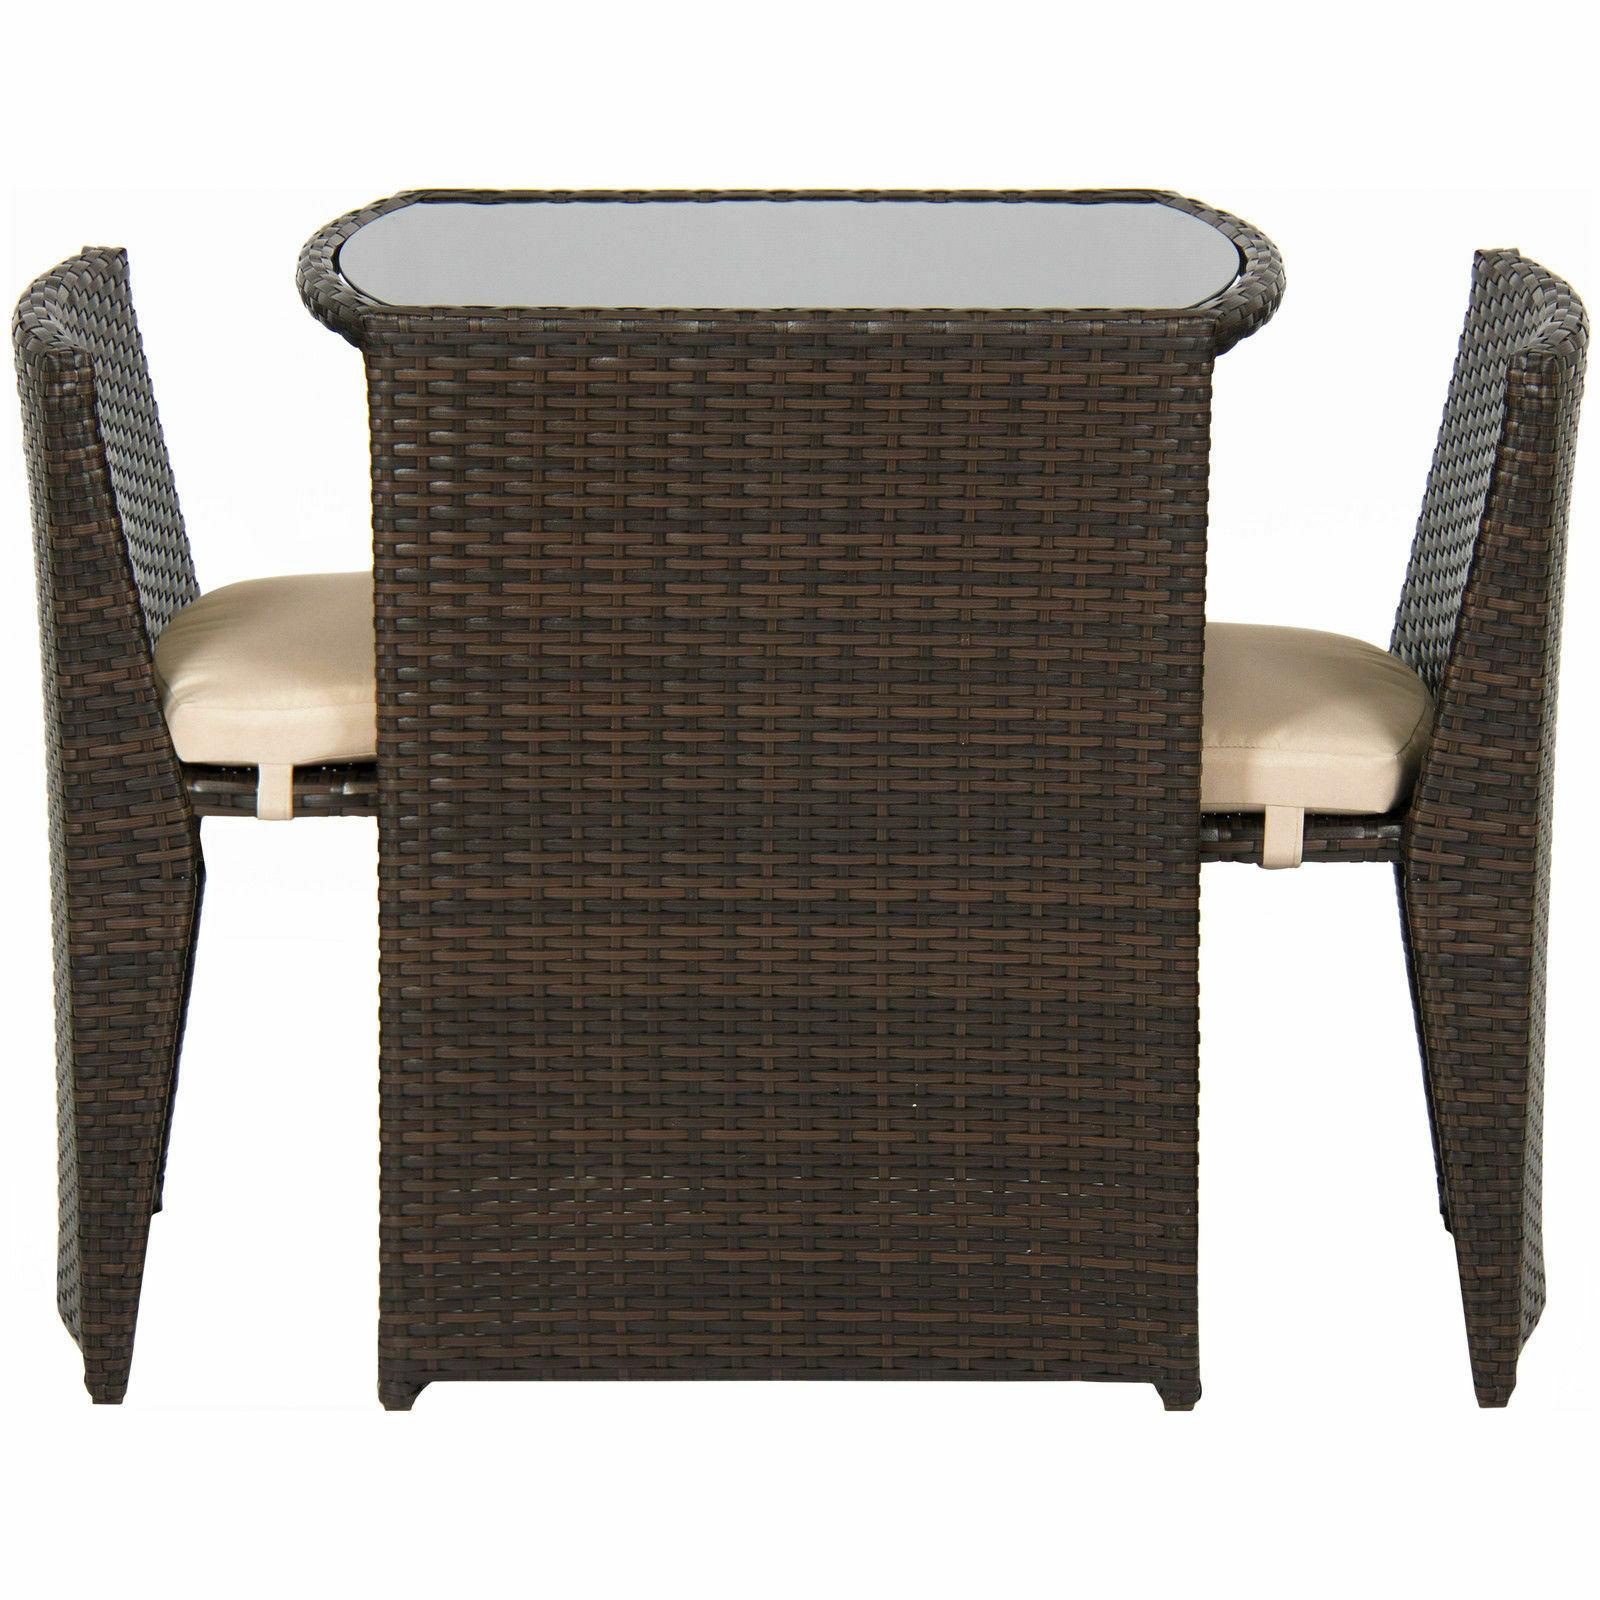 Outdoor Patio Furniture Wicker 3pc Set Top Table, 2 Brown